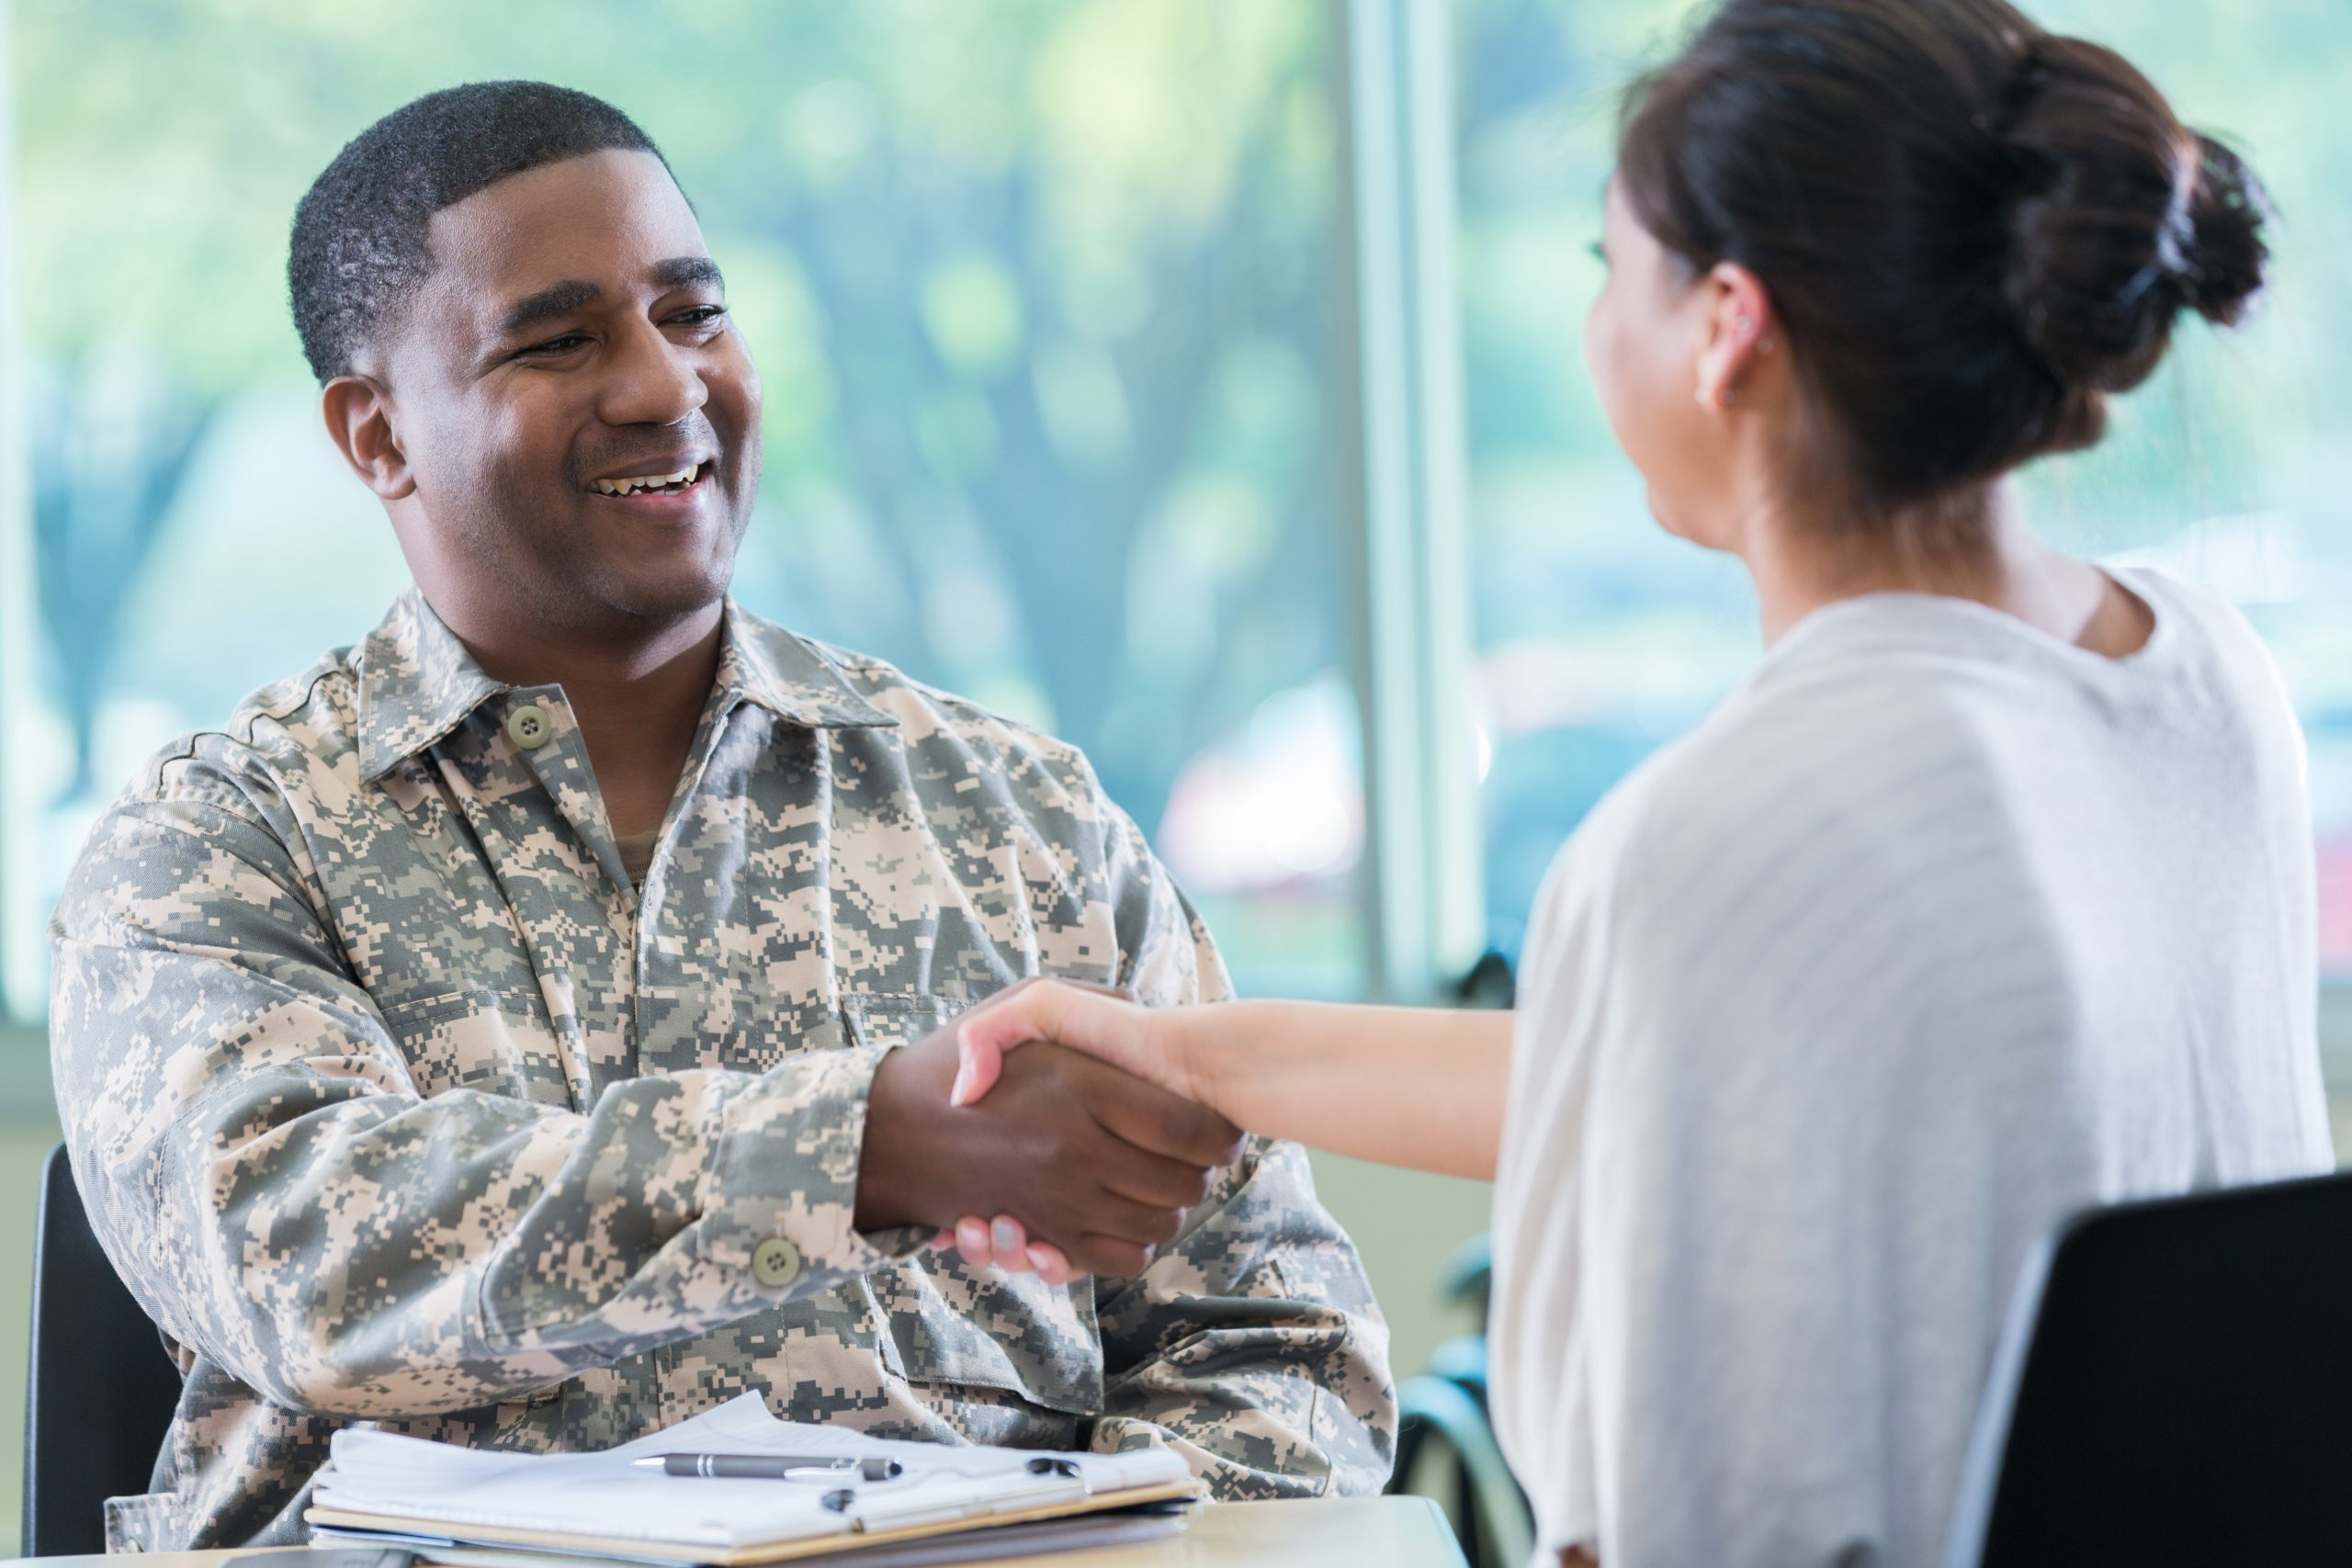 Cheerful mid adult African American army recruitment officer shakes hands with a potential female recruit.